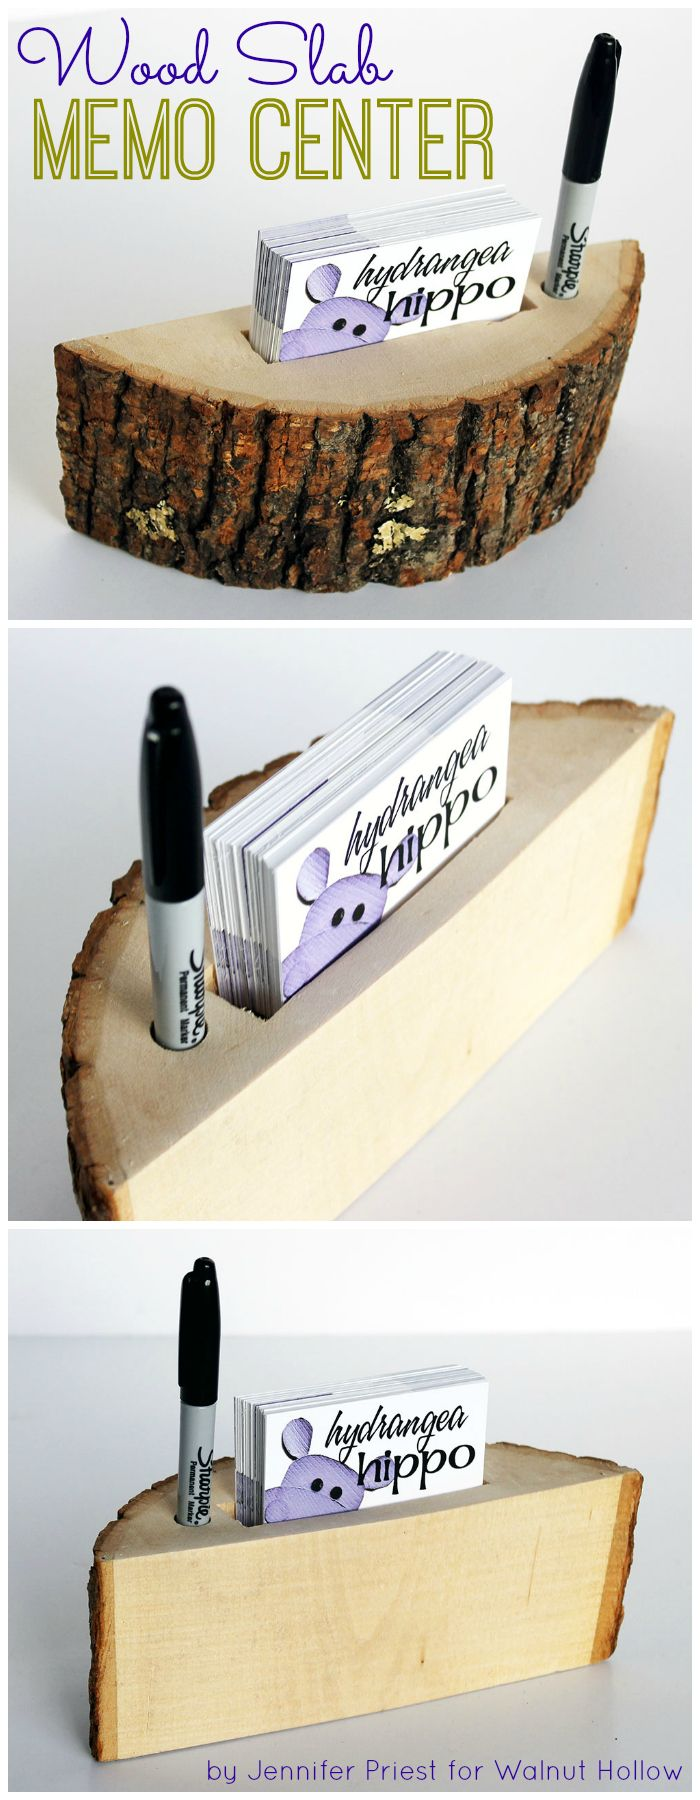 Wood Slab Business Card and Pen Holder by Jennifer Priest of hydrangeahippo